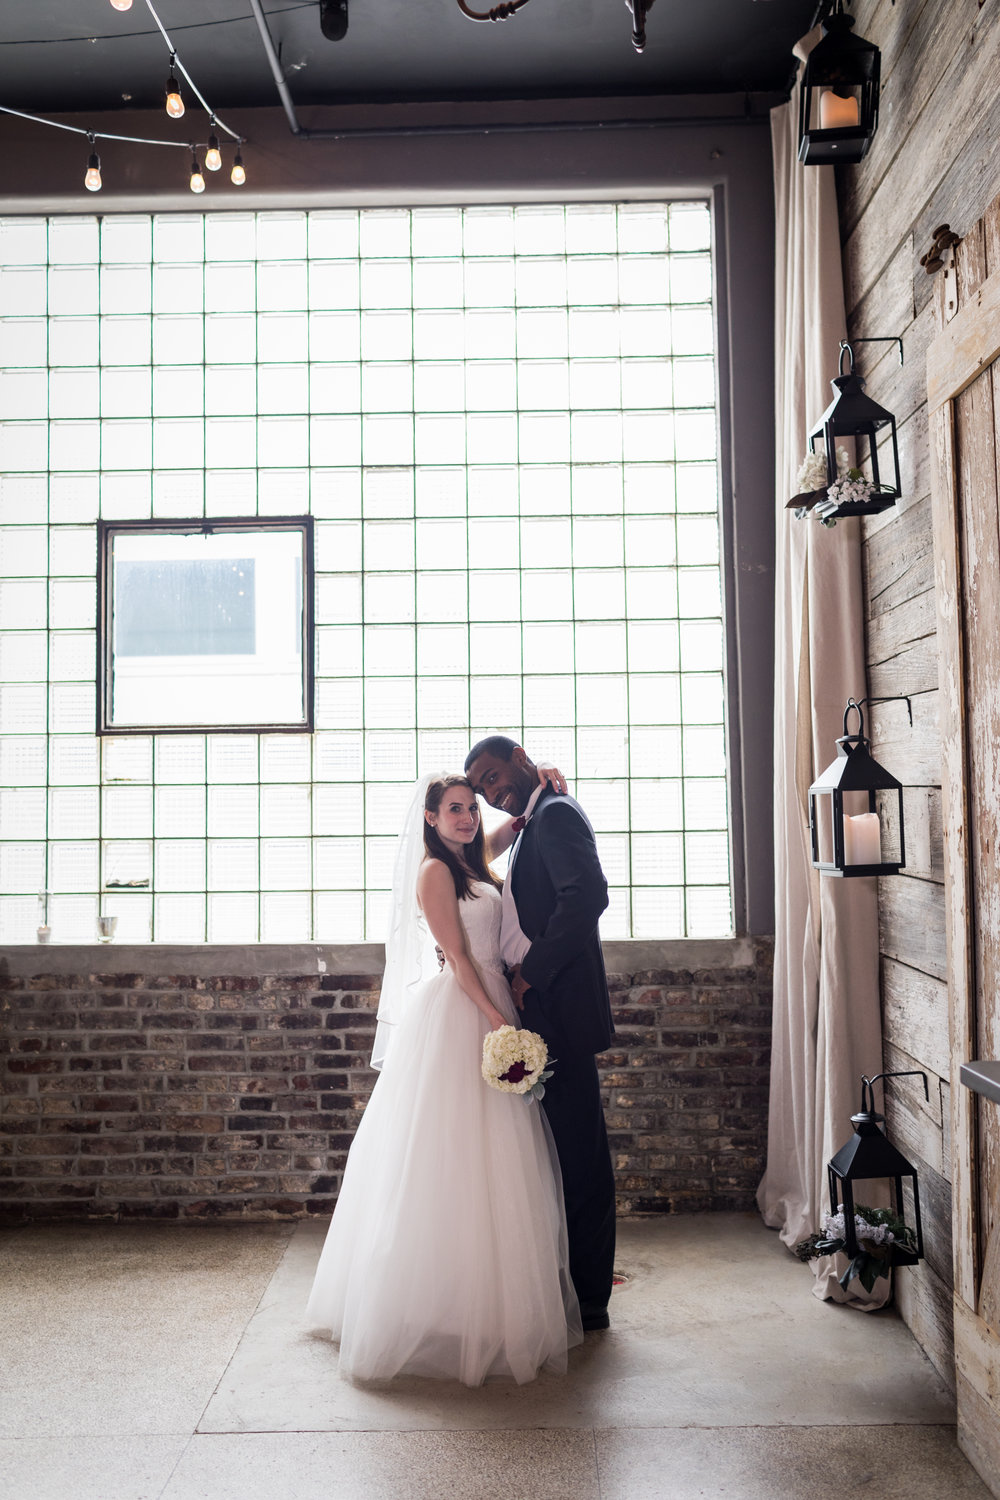 Kansas_City_Small_Wedding_Venue_Elope_Intimate_Ceremony_Budget_Affordable_15MinWedding-127.jpg